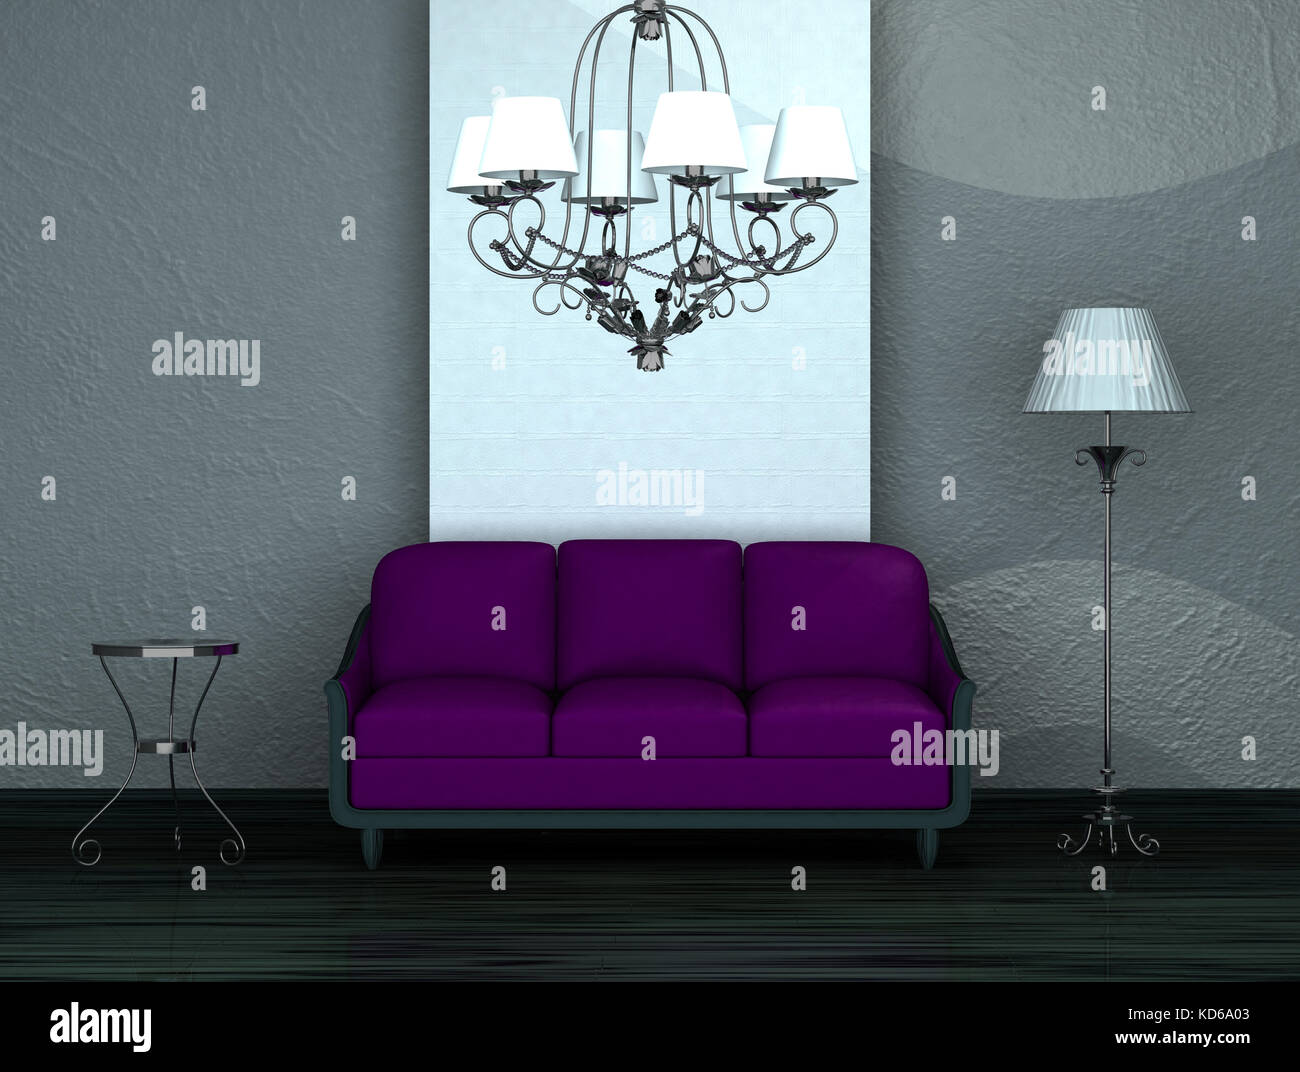 Purple Sofa With Table Stand Lamp And Luxury Chandelier In Stock Photo Alamy